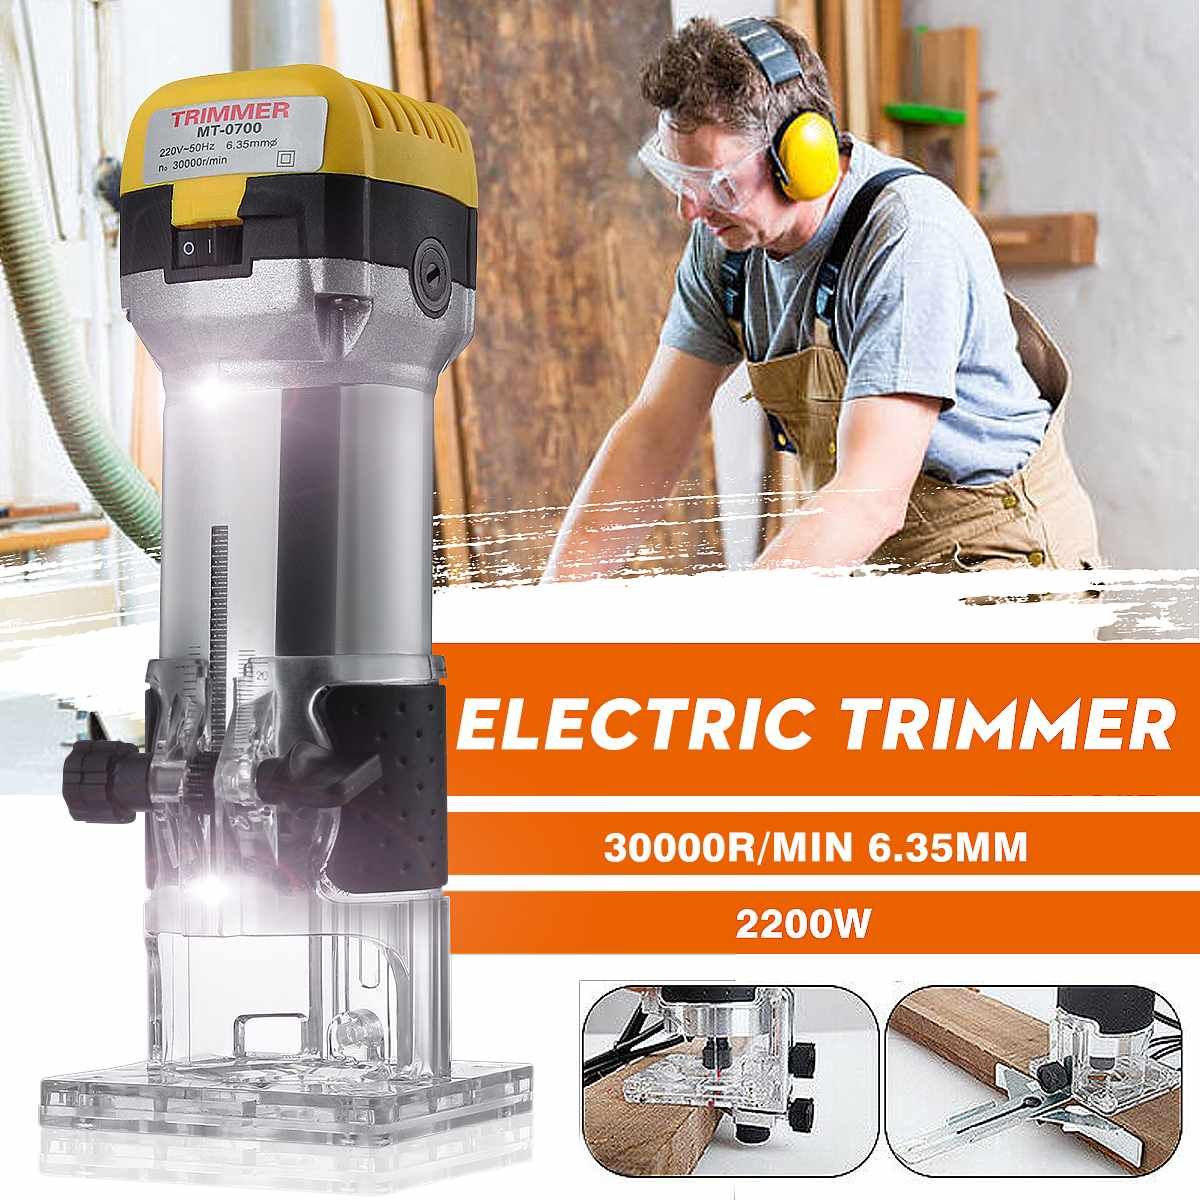 2200W 30000RPM  Woodworking Electric Trimmer Wood Milling Engraving Slotting Trimming Machine Hand Carving Machine Wood Router